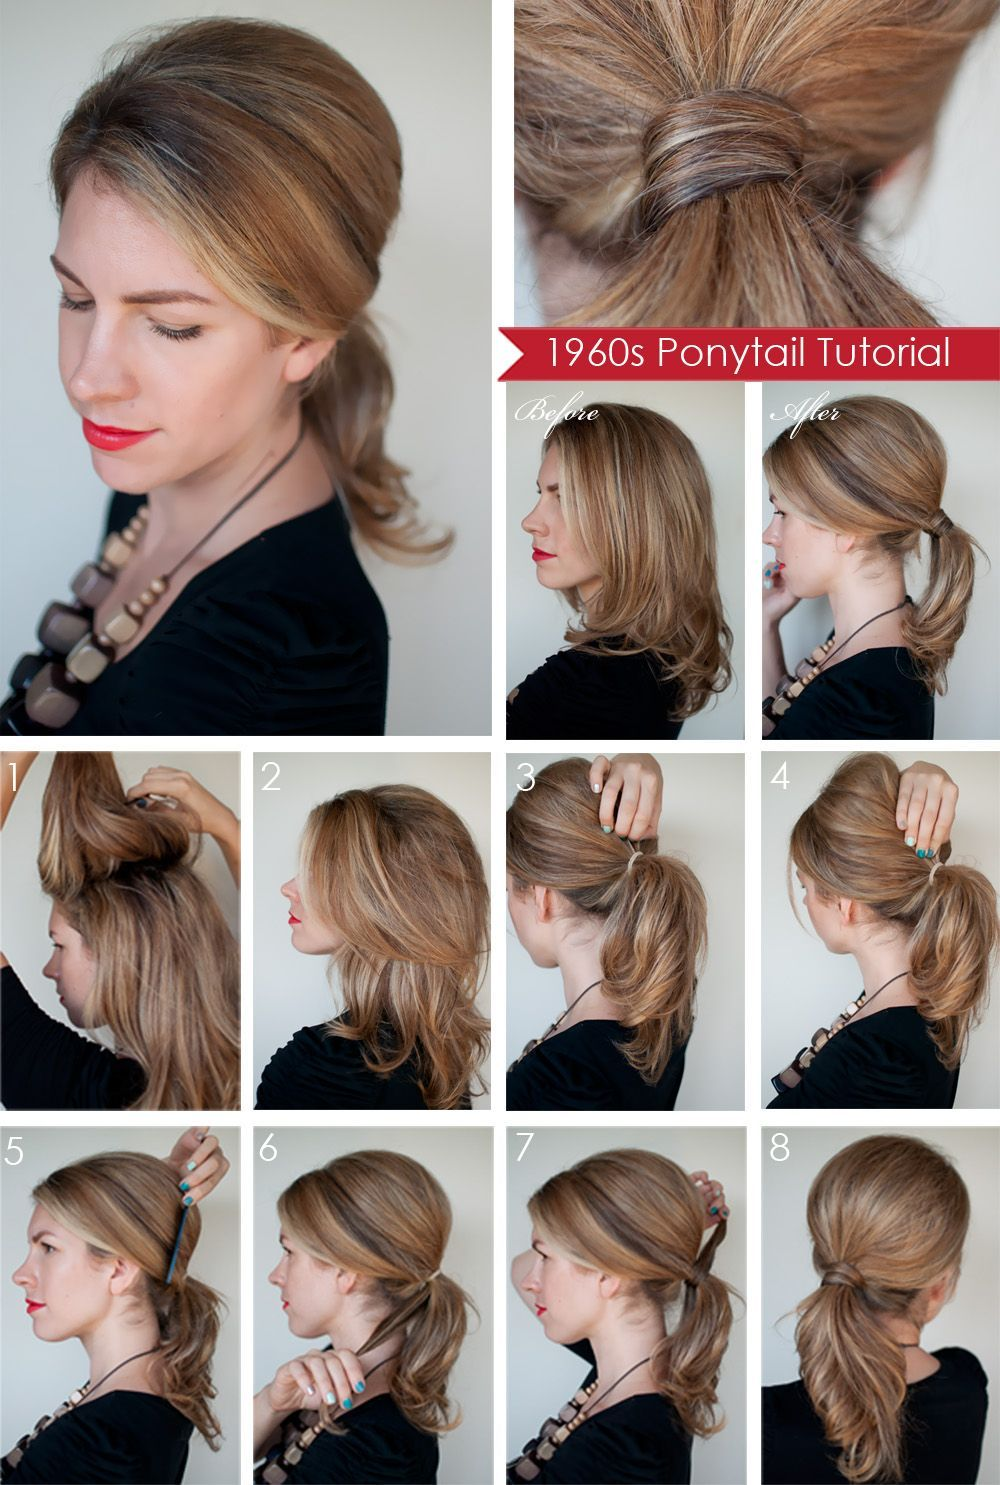 Easy Hairstyles For Short Hair To Do At Home Adorable How To Make Hairstyles At Home For Short Hair Easy  It's All About